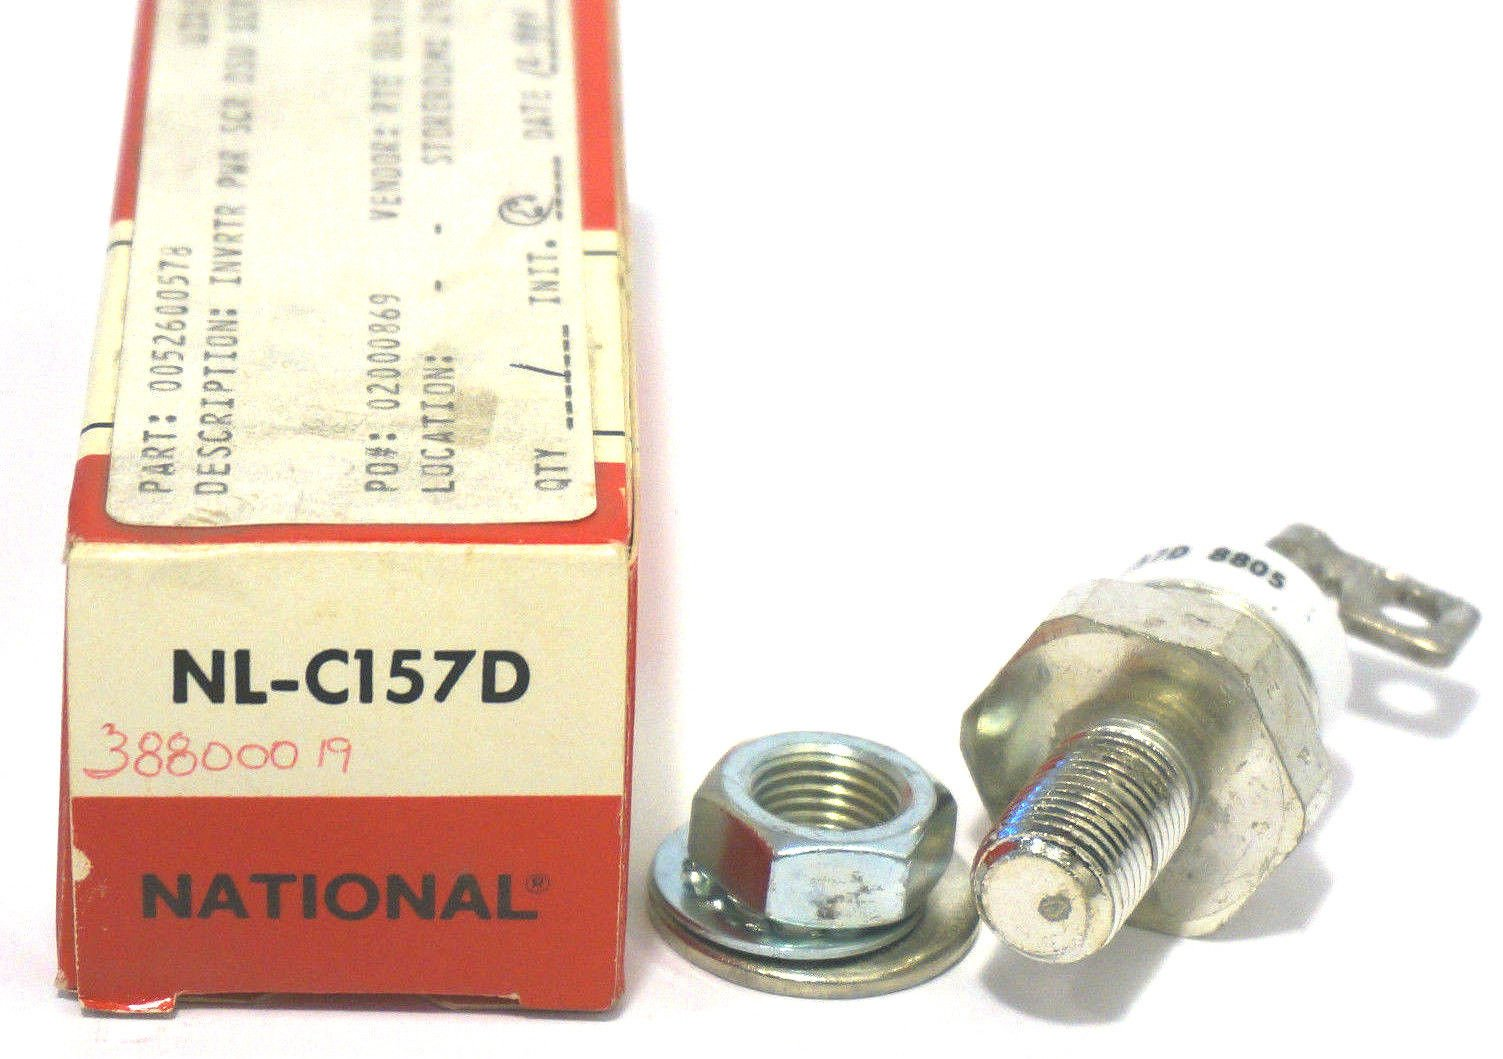 NEW NATIONAL NL-C157D TETRODE NLC157D